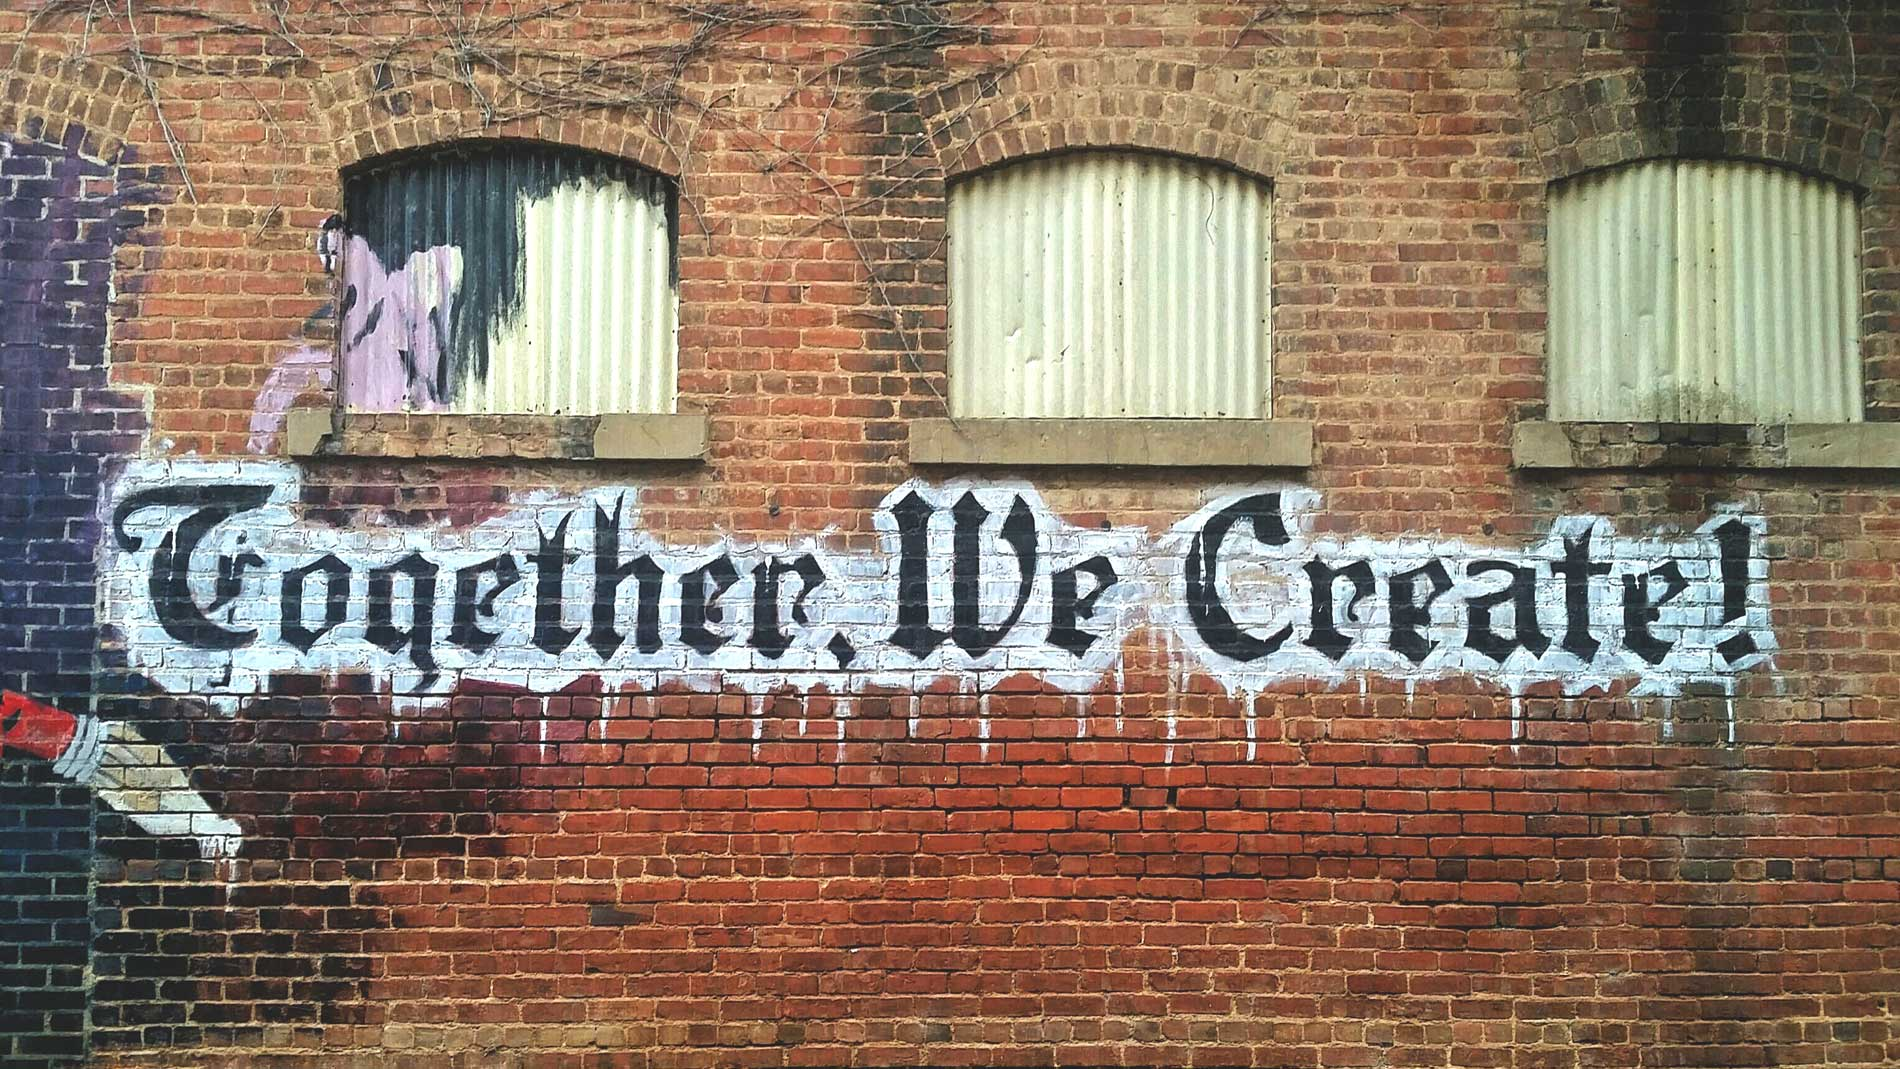 Togehter We Create!